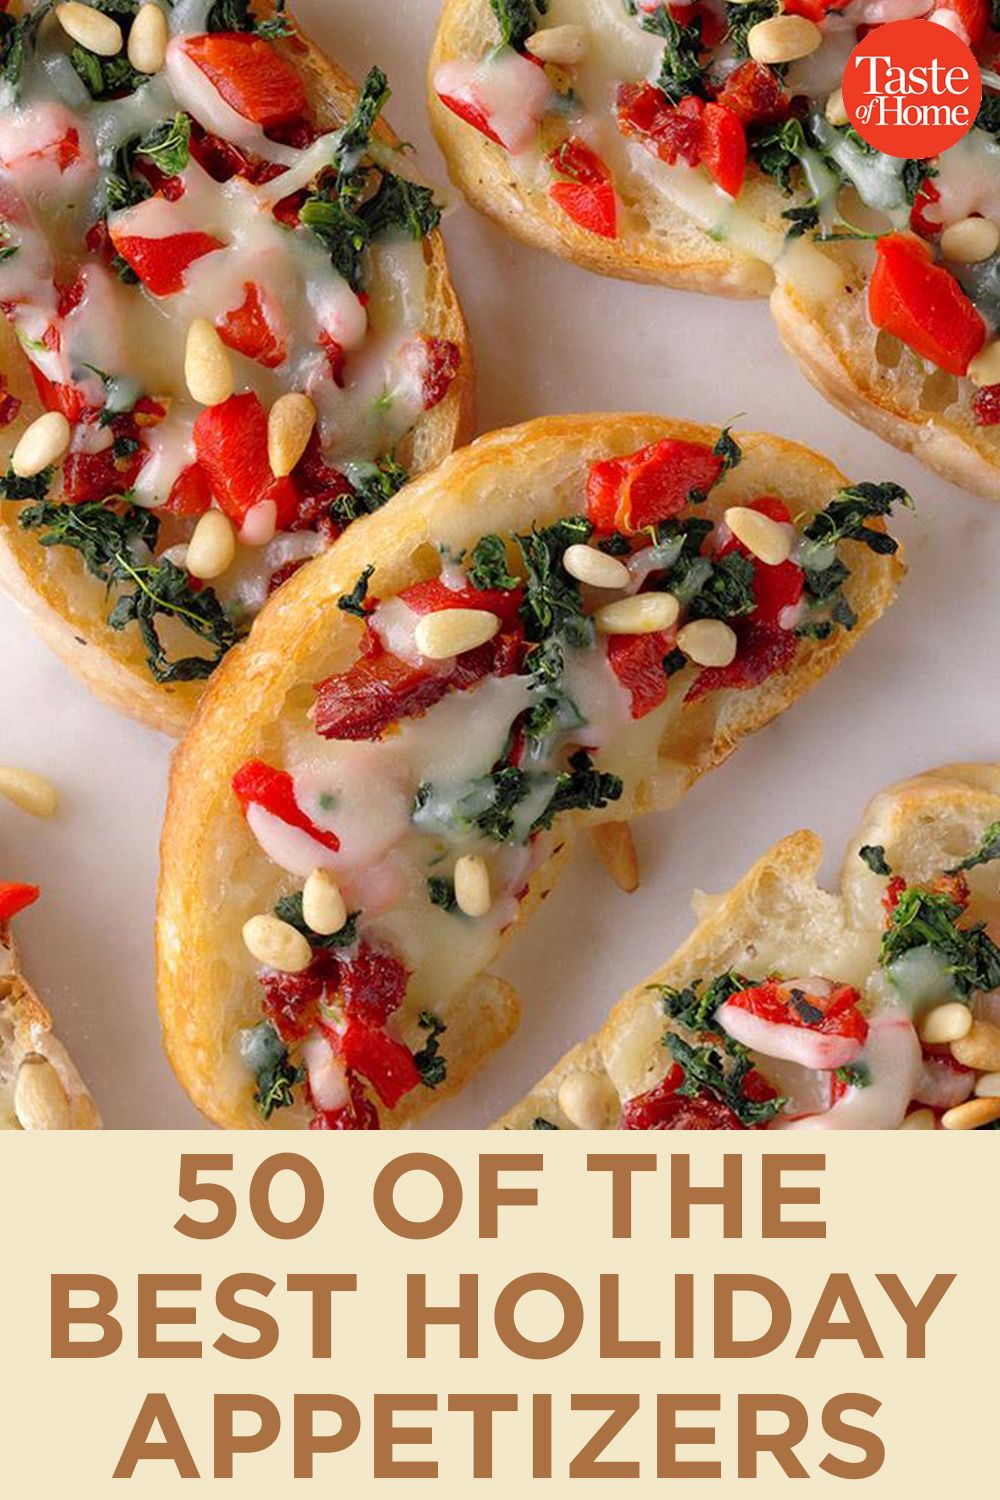 50 of the Best Holiday Appetizers